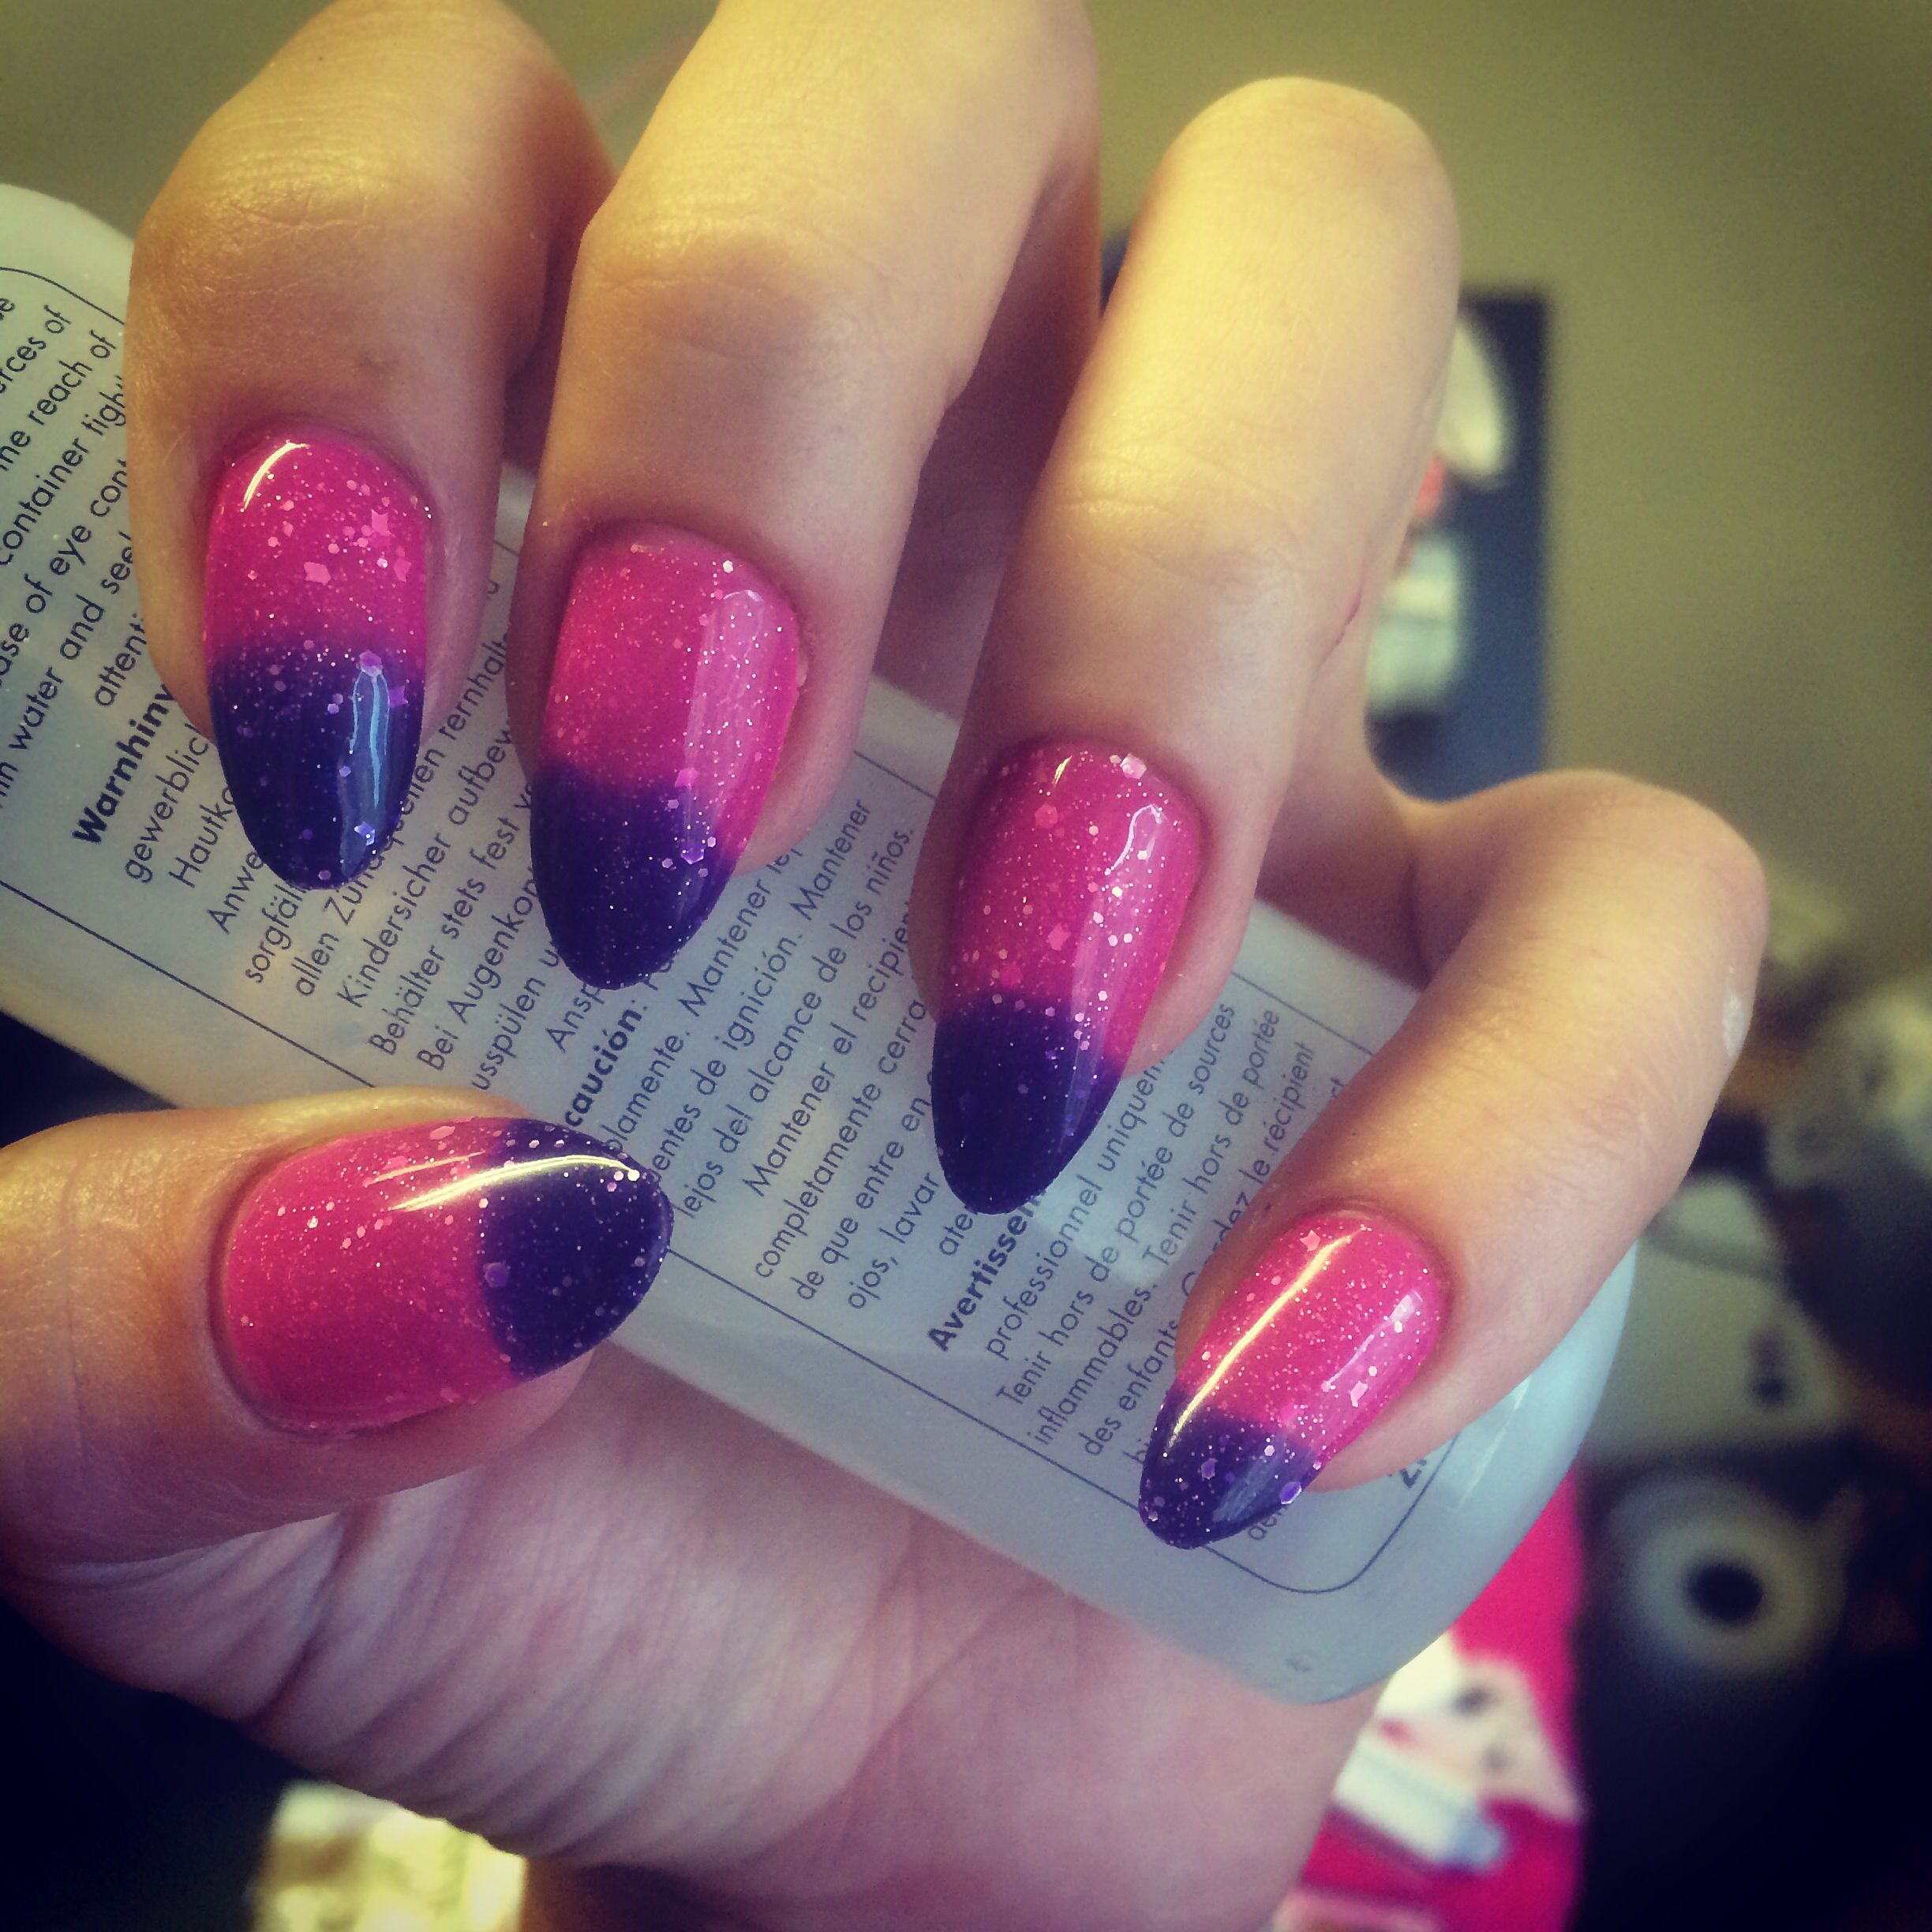 My Nails This Week Almond Acrylic Enhancements With Colour Change Glitter Gel Polish Love These Ps Shape Is Super Hard To Do On Your Own